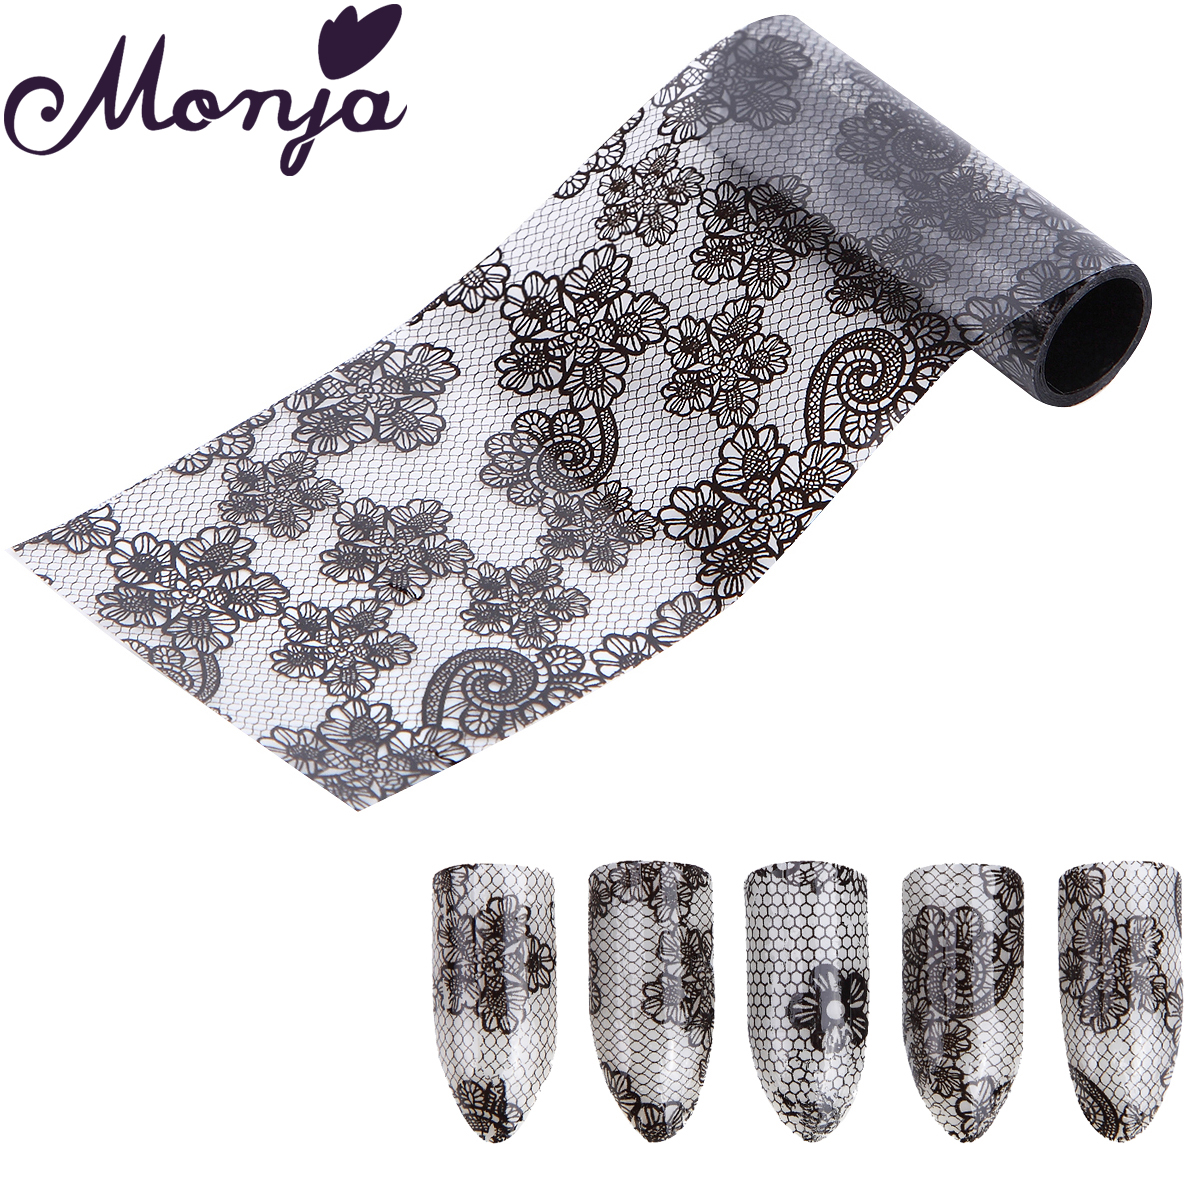 1 Roll Black Nail Art Magic Totem Flower Lace Image Starry Sky Foil Sticker Glue Transfer Fashion Decals Wraps 3D DIY Decoration hot sale 20 sheets lot 20 4cm nail art transfer foil floral serial sexy black lace pattern nail sticker foil material diy wy188